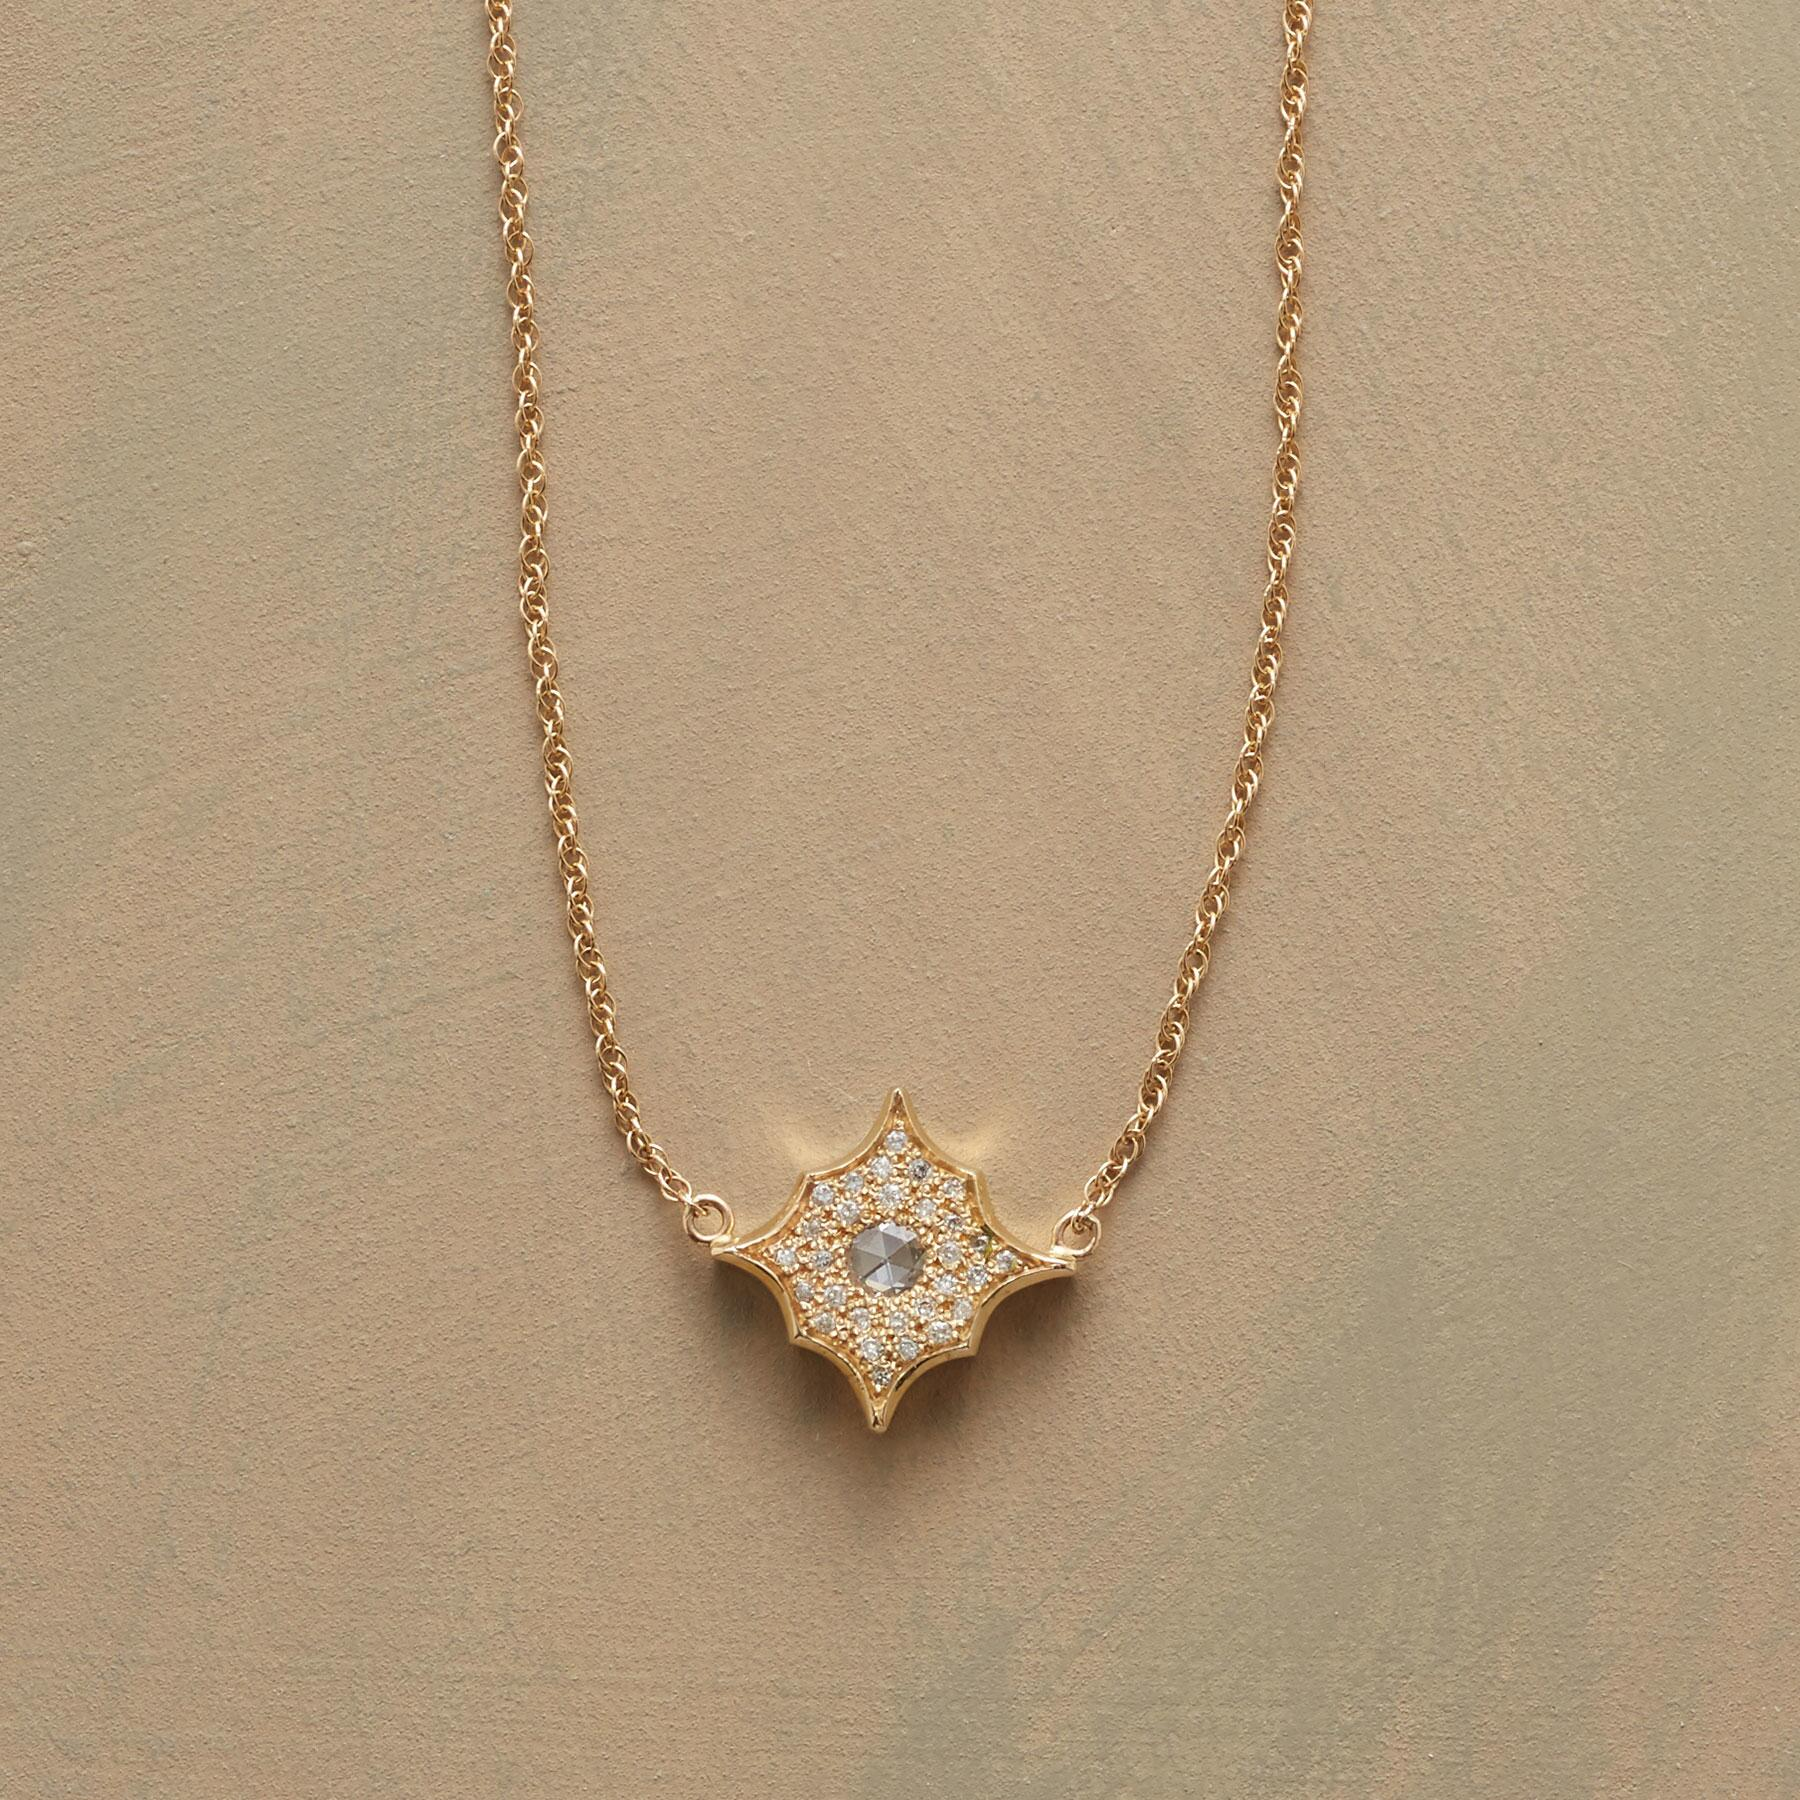 STARLIT SKY NECKLACE: View 1